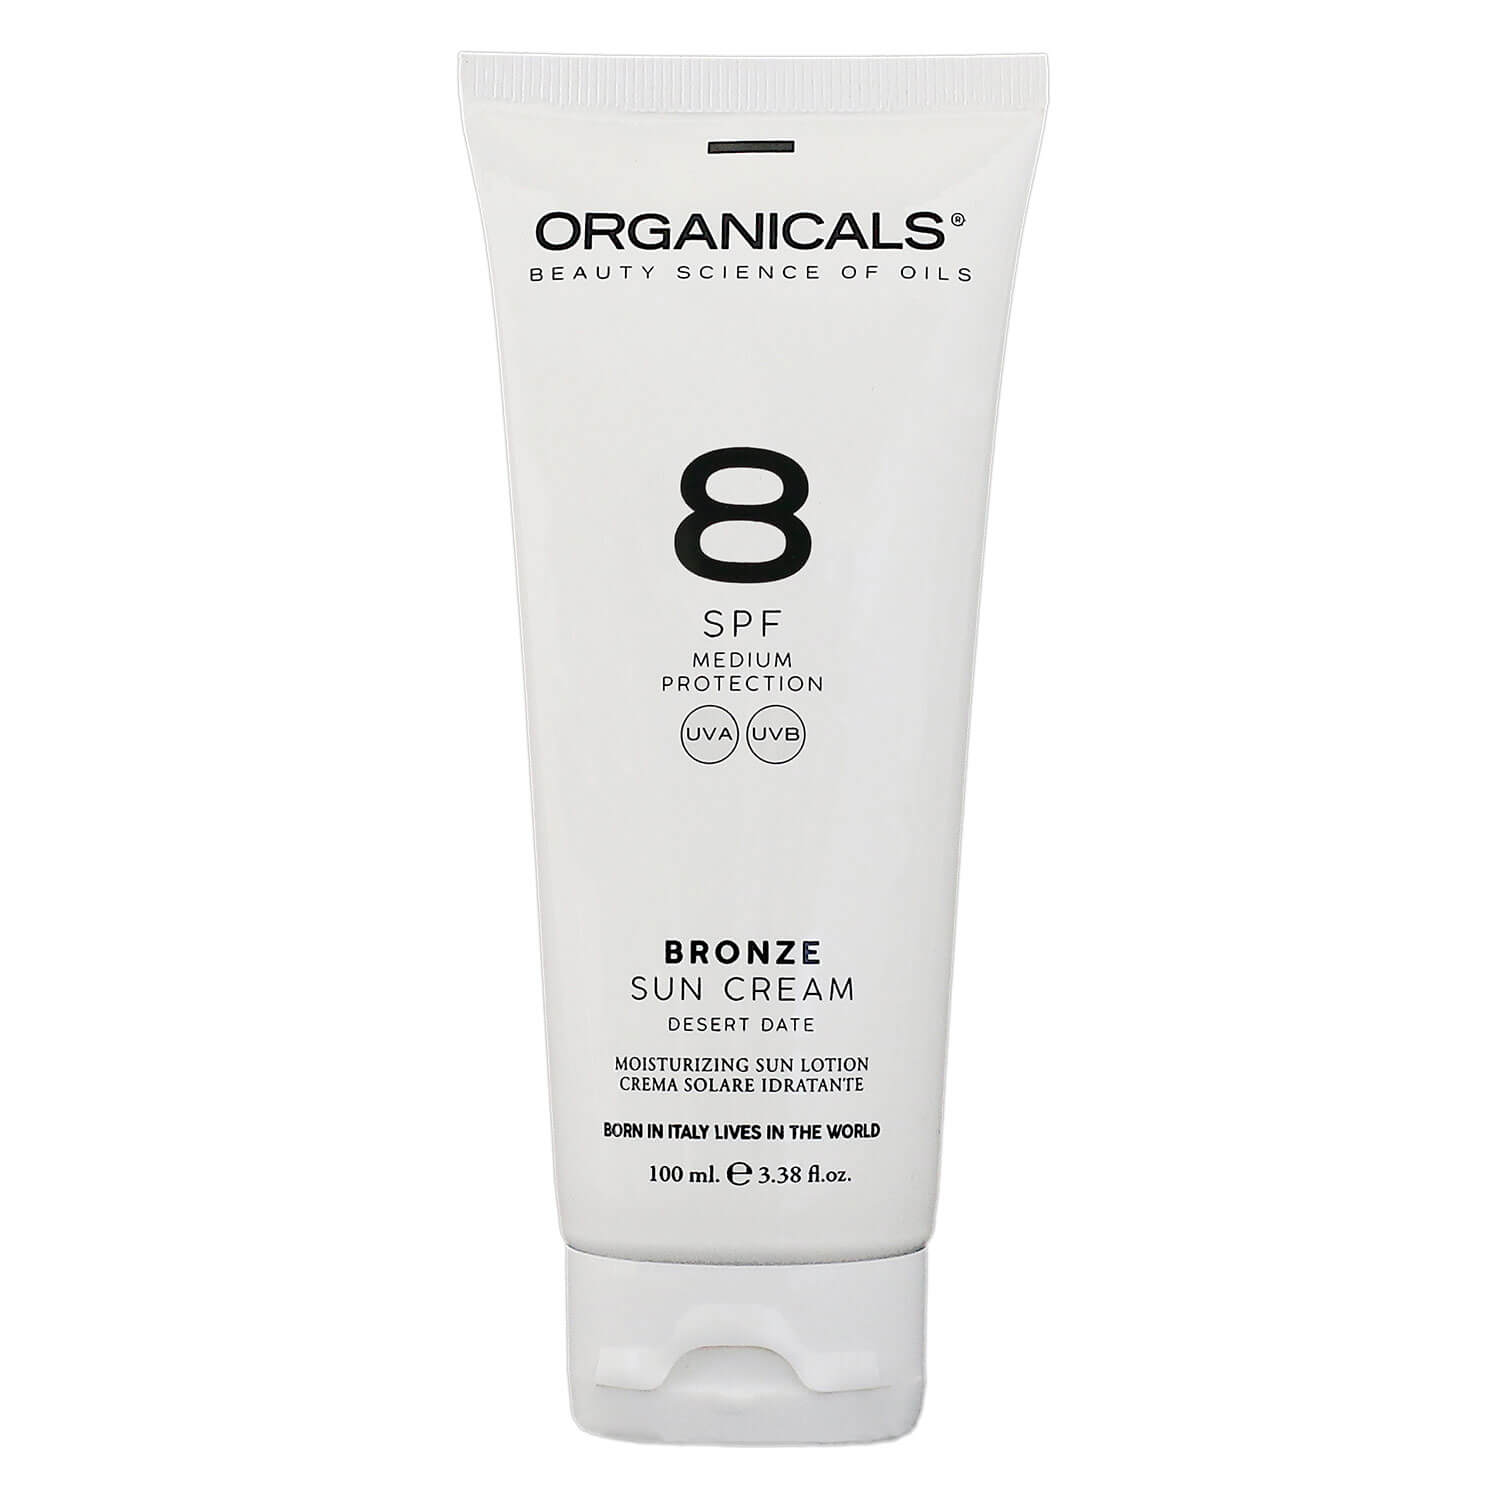 ORGANICALS - Low Protection Bronze Sun Cream SPF 8